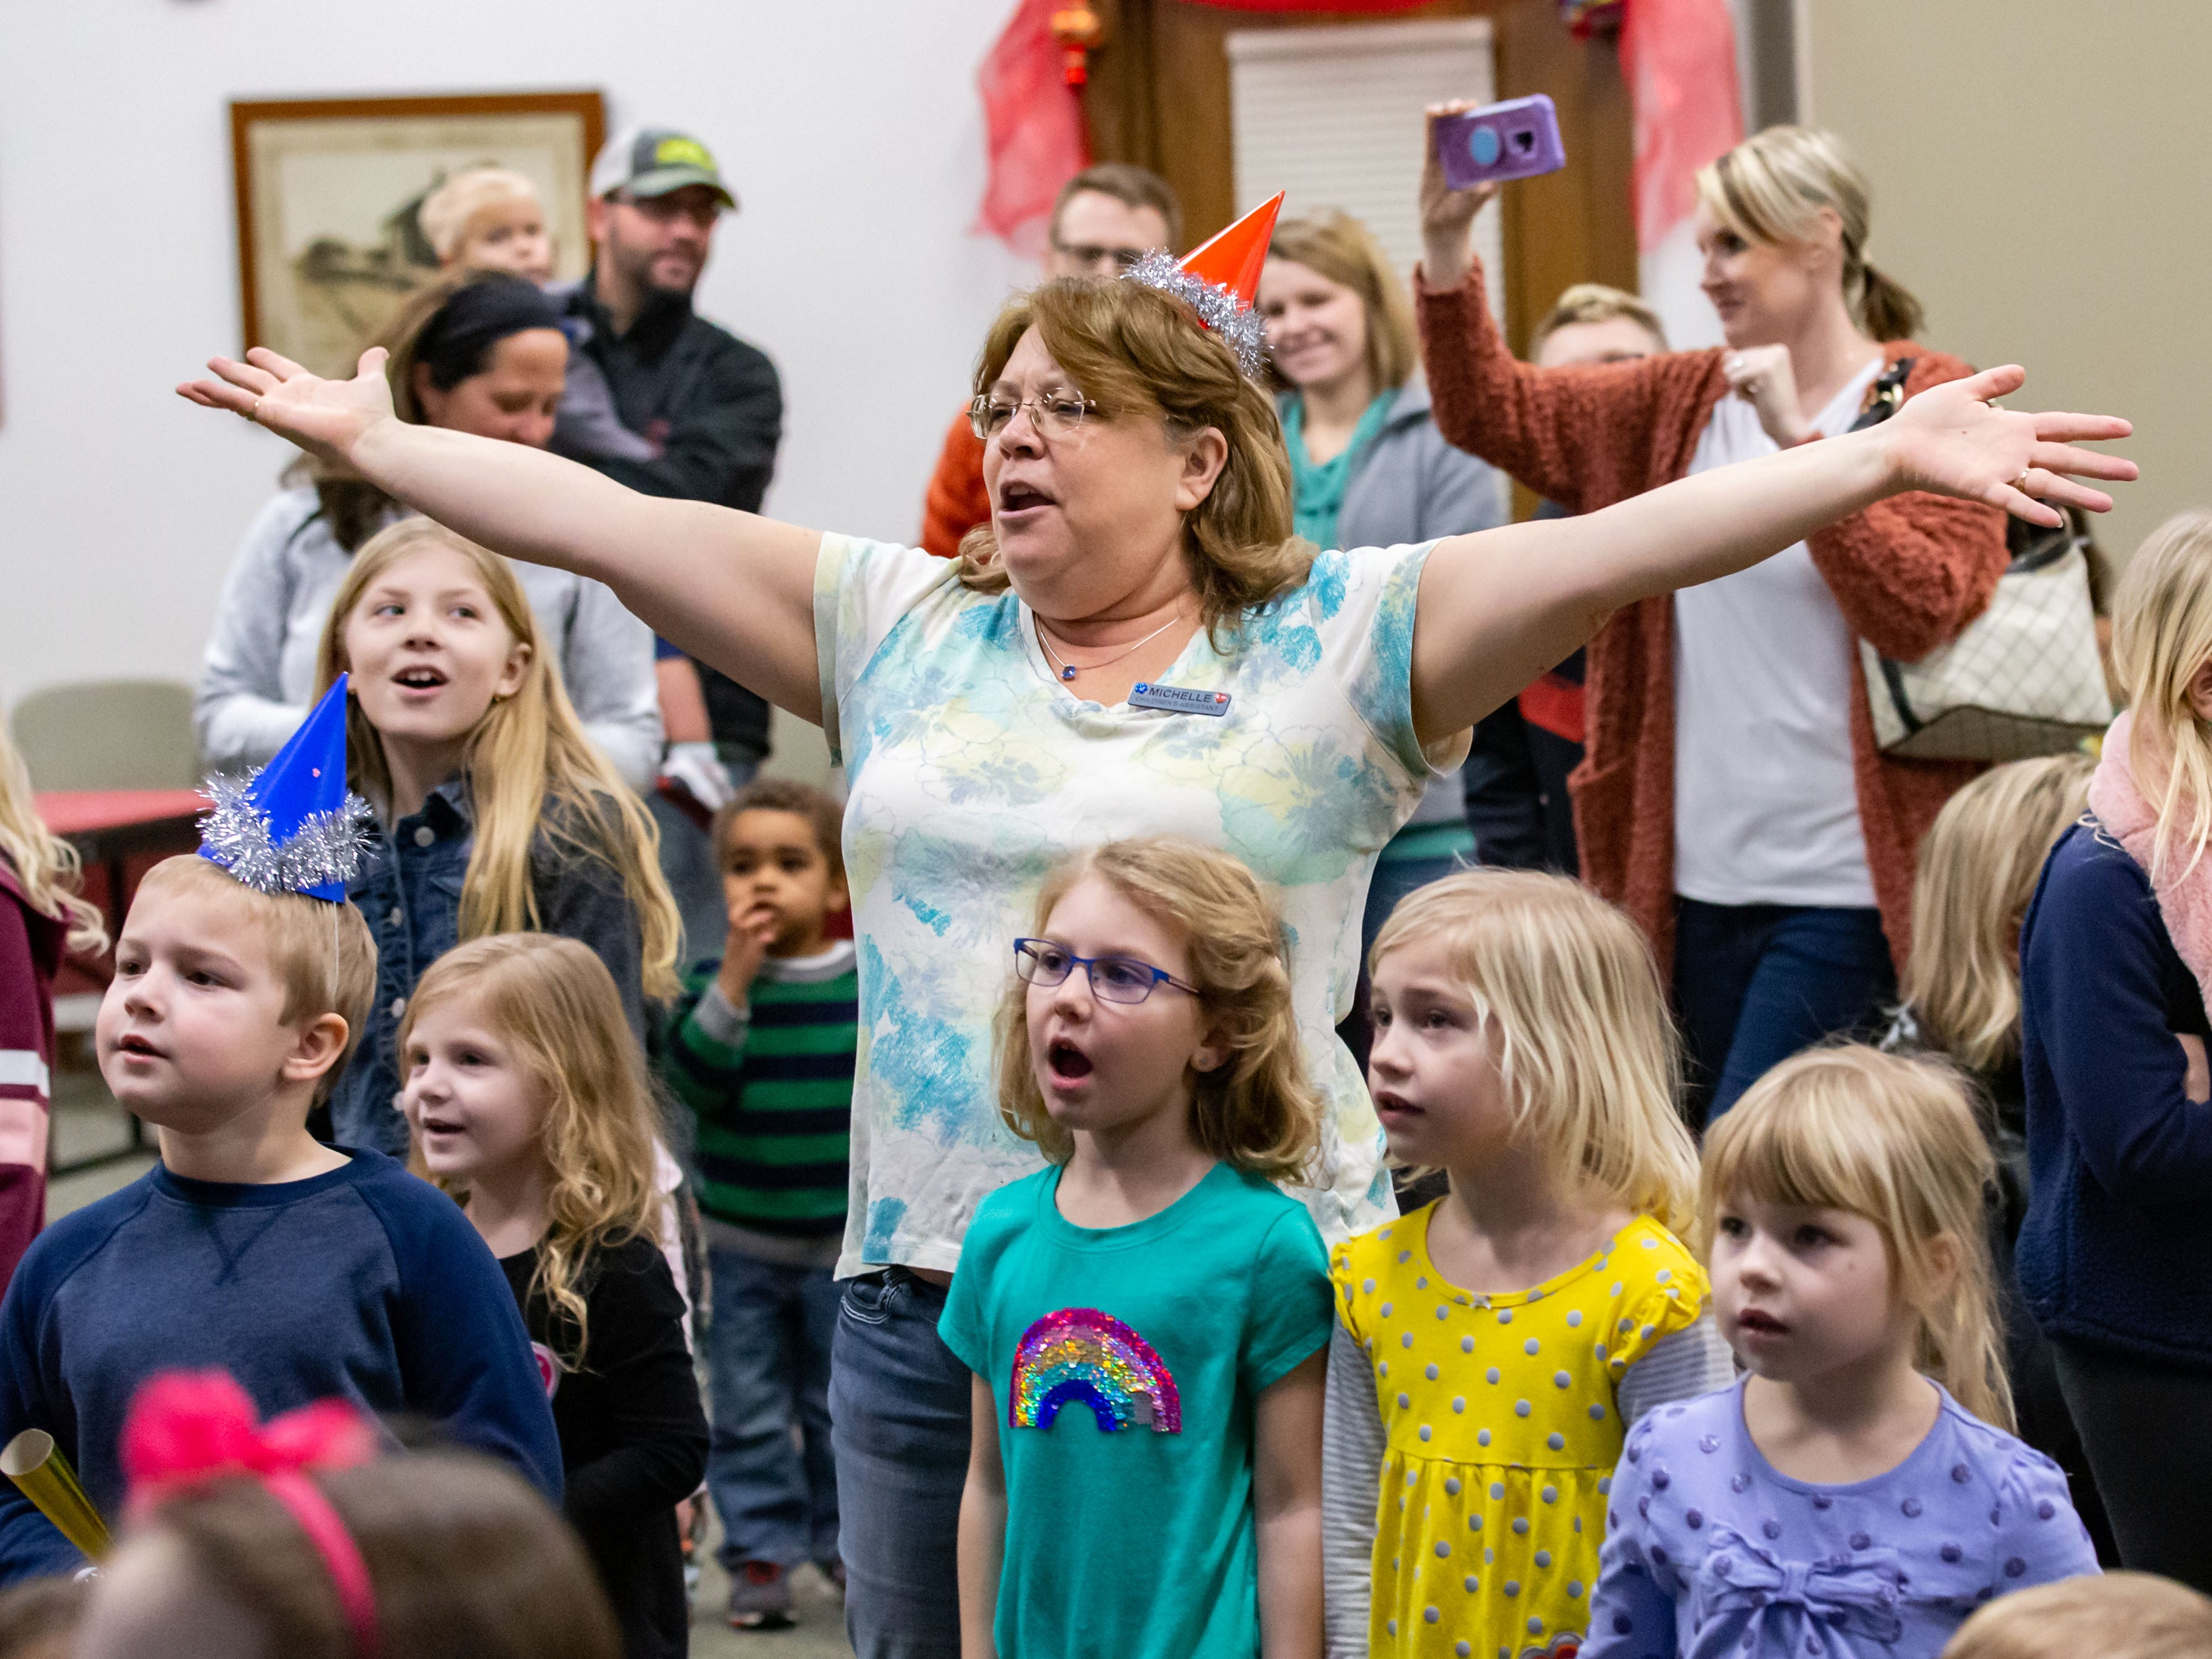 """Youth Services Assistant Michelle Michalik leads youngsters through a Disney song during the """"Noon Year's Eve"""" party at the Mukwonago Community Library on Friday, Dec. 28, 2018. The family friendly event featured crafts, music, dancing and a balloon drop at noon."""